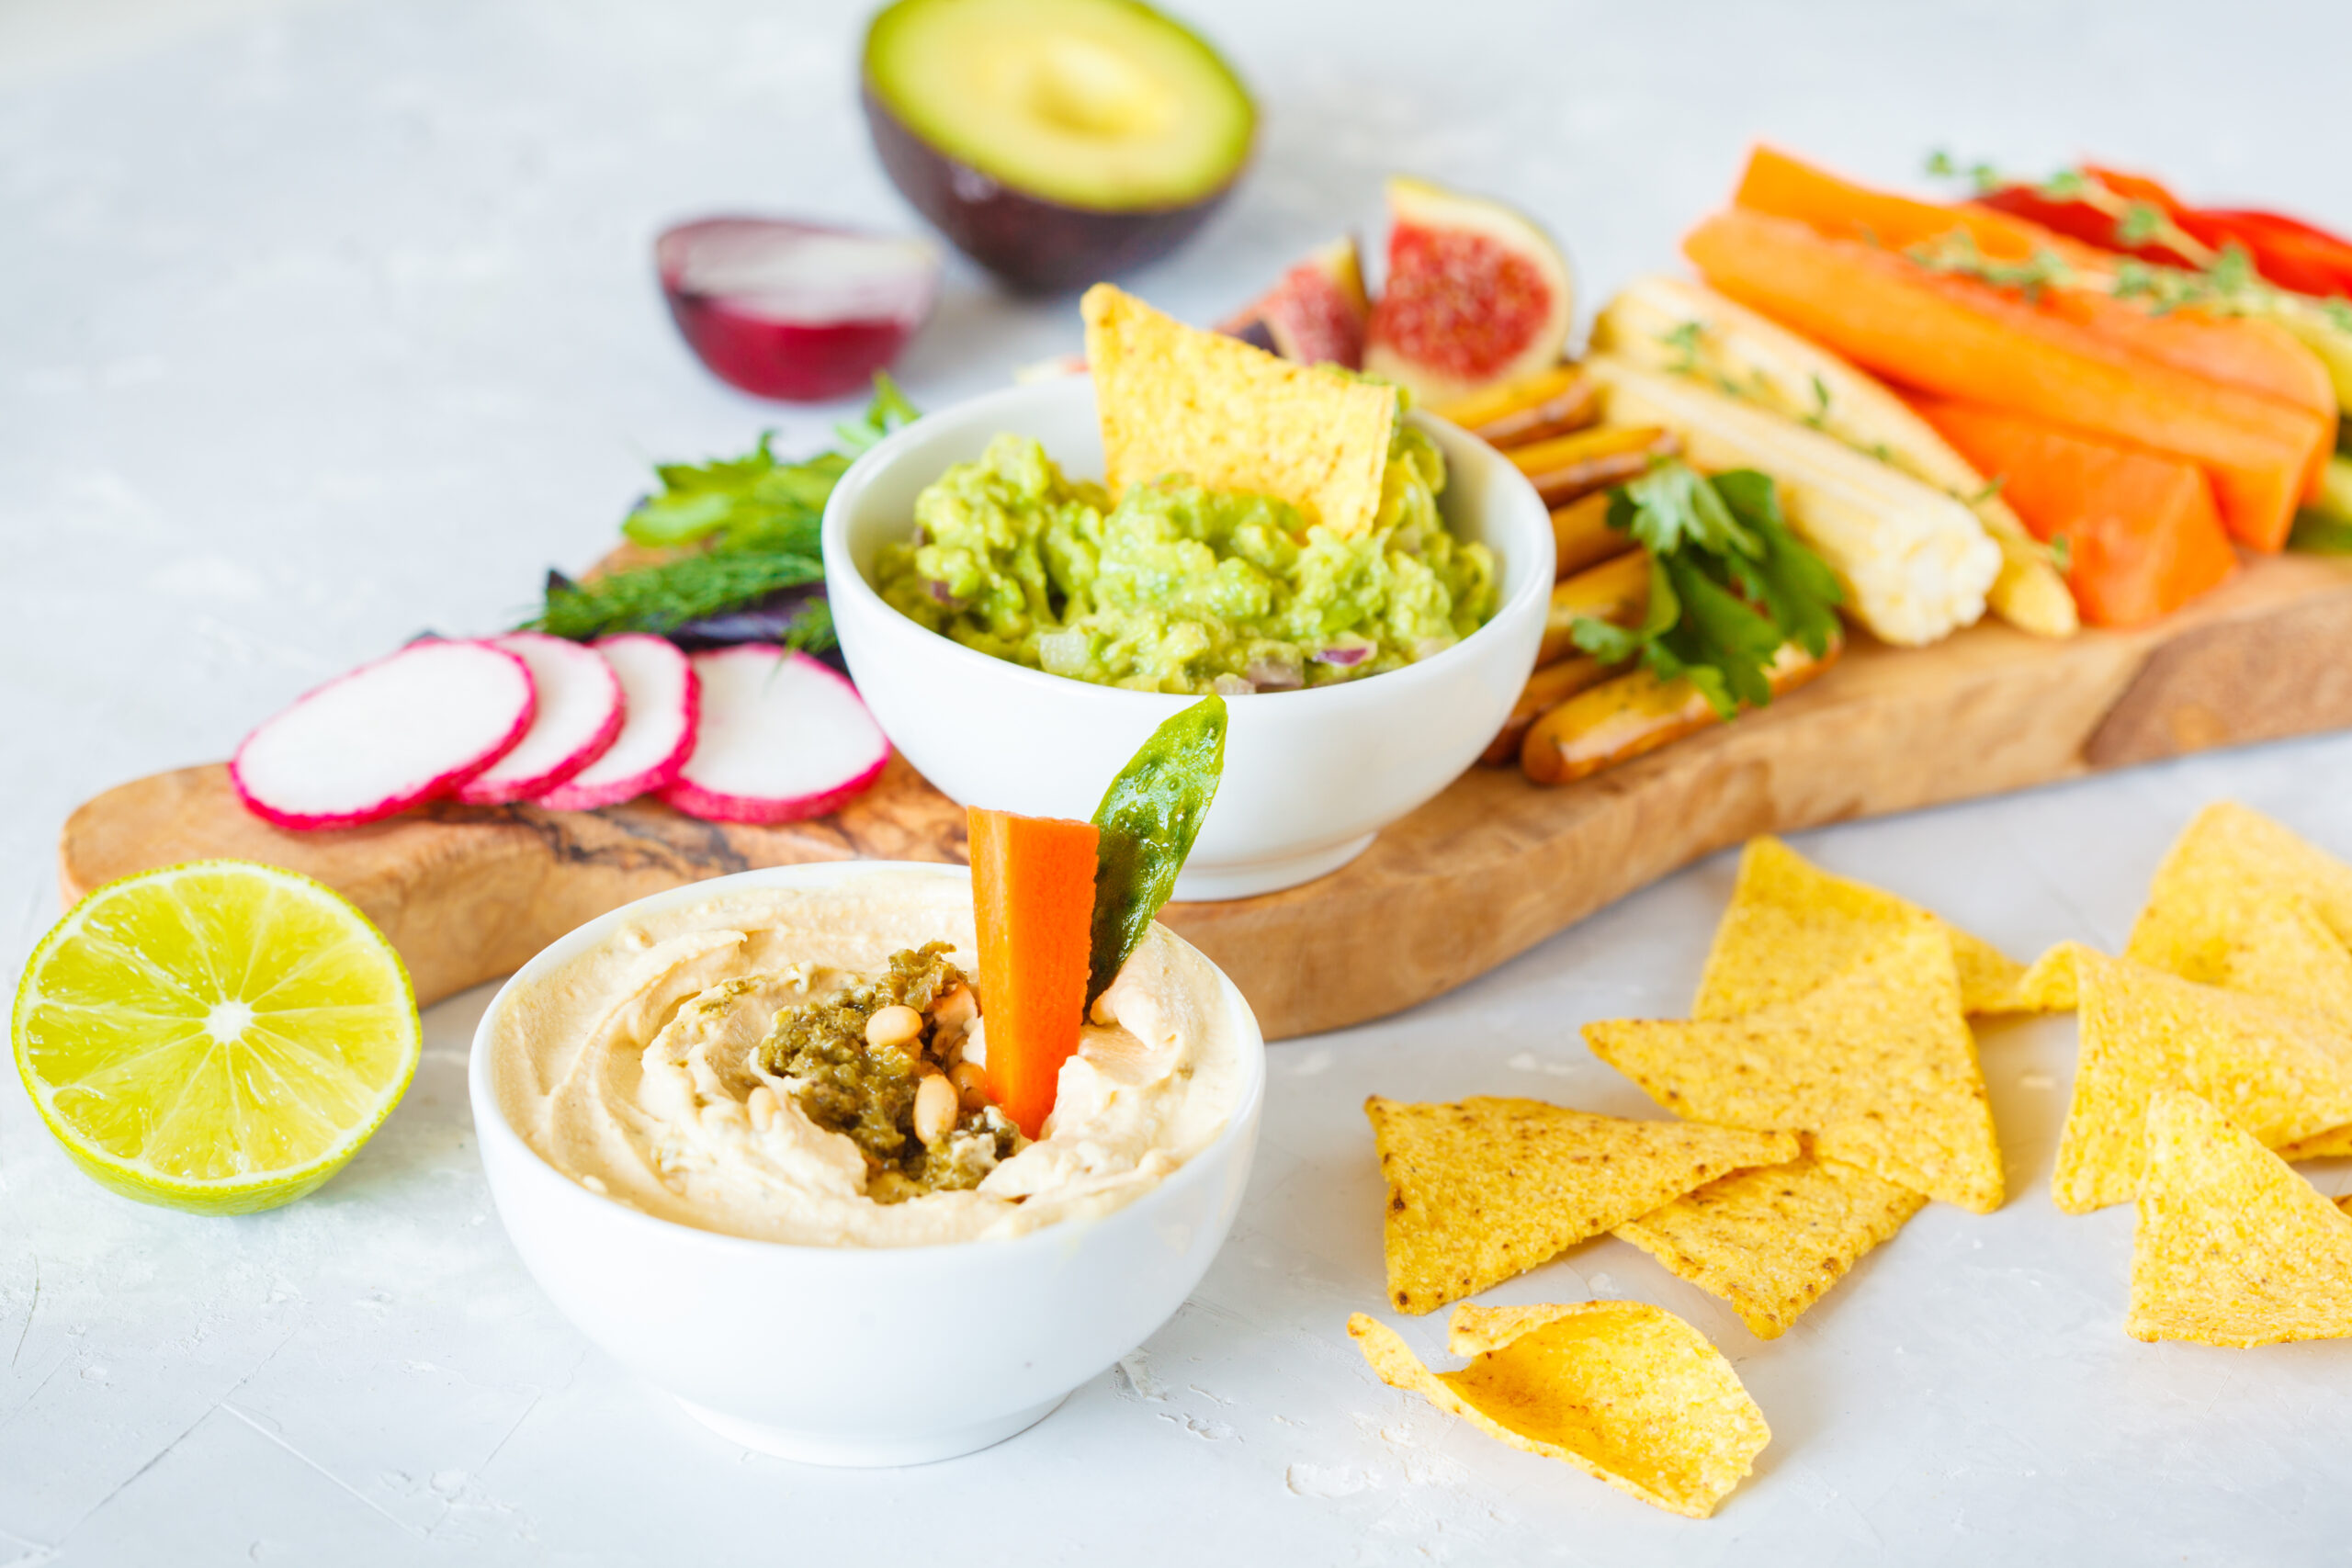 snacks arranged on a board including tortilla chips, hummus, guacamole, and a variety of sliced vegetables and fruits such as carrots, radishes, avocado, and figs